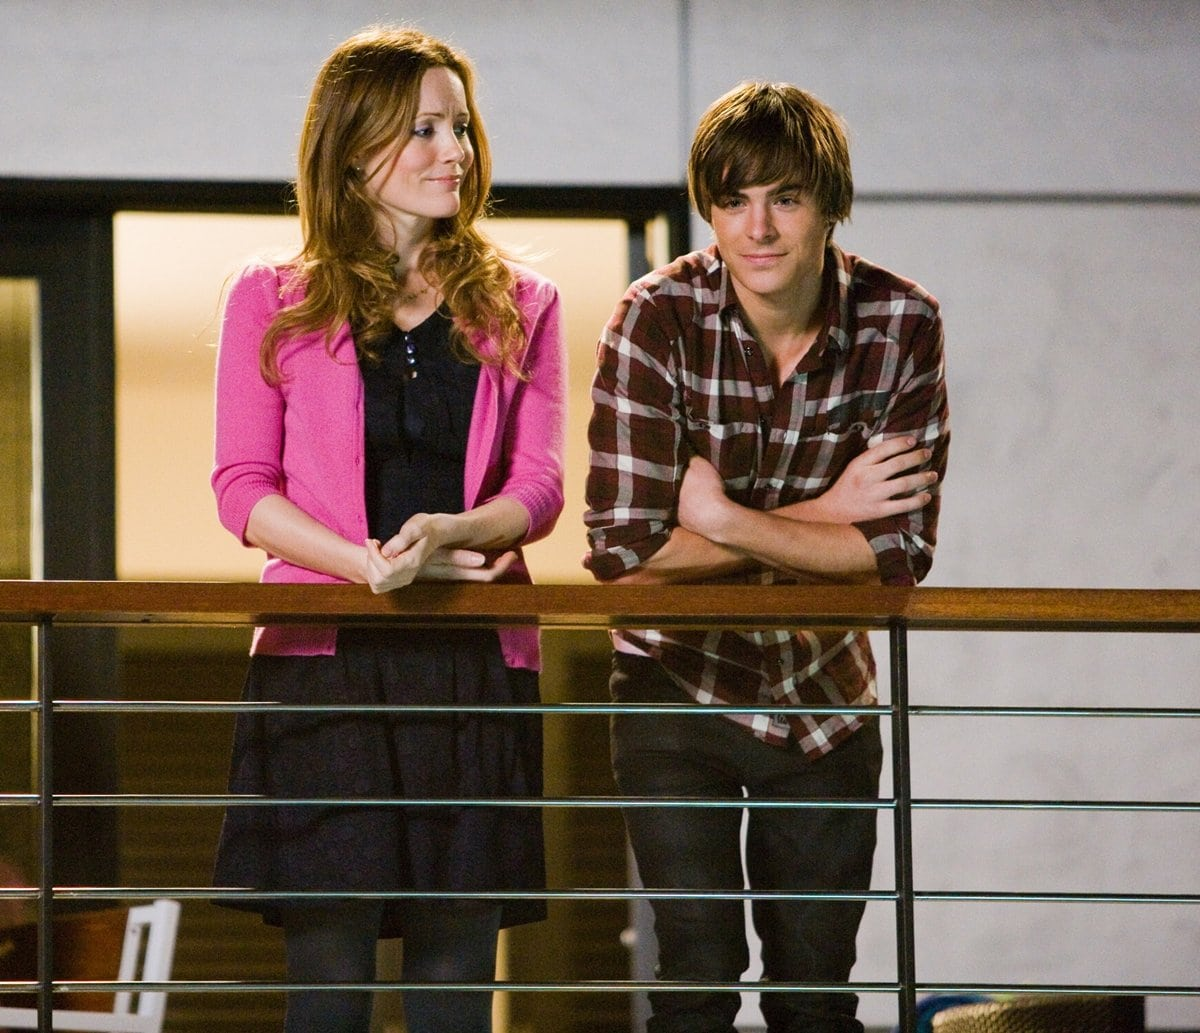 Zac Efron and Leslie Mann in 17 Again, a 2009 American fantasy comedy film directed by Burr Steers